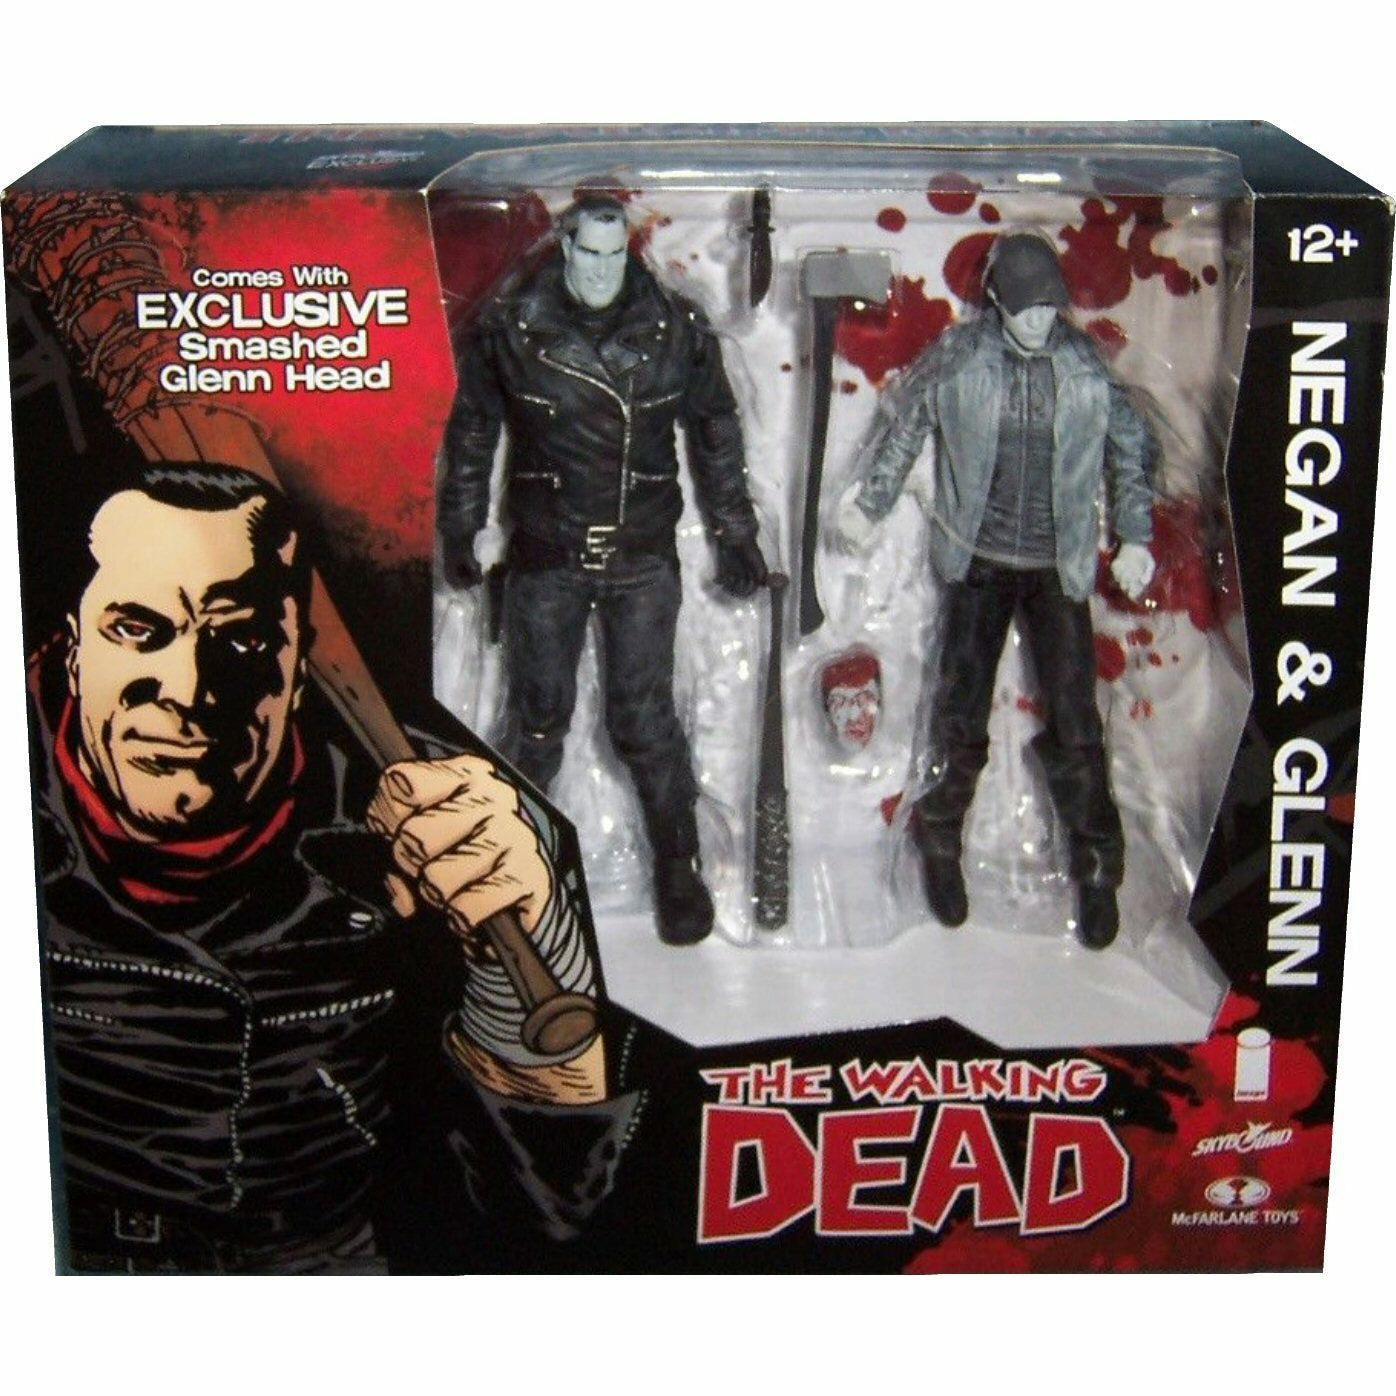 The Walking Dead Negan and Glenn Black and White Ver. Action Figure Set